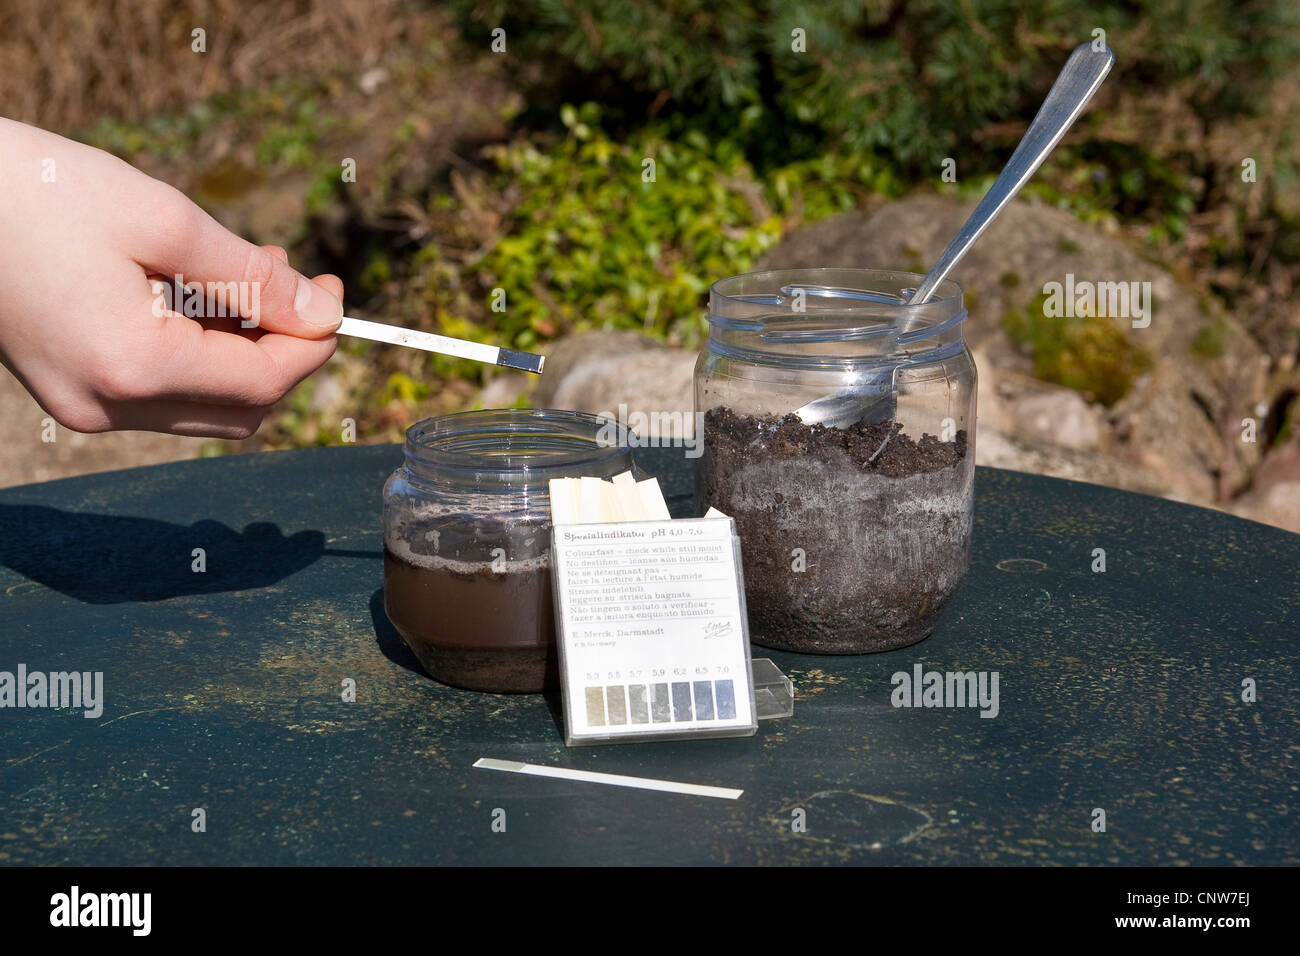 ph value of a sample of the soil ist tested with litmus paper, Germany - Stock Image